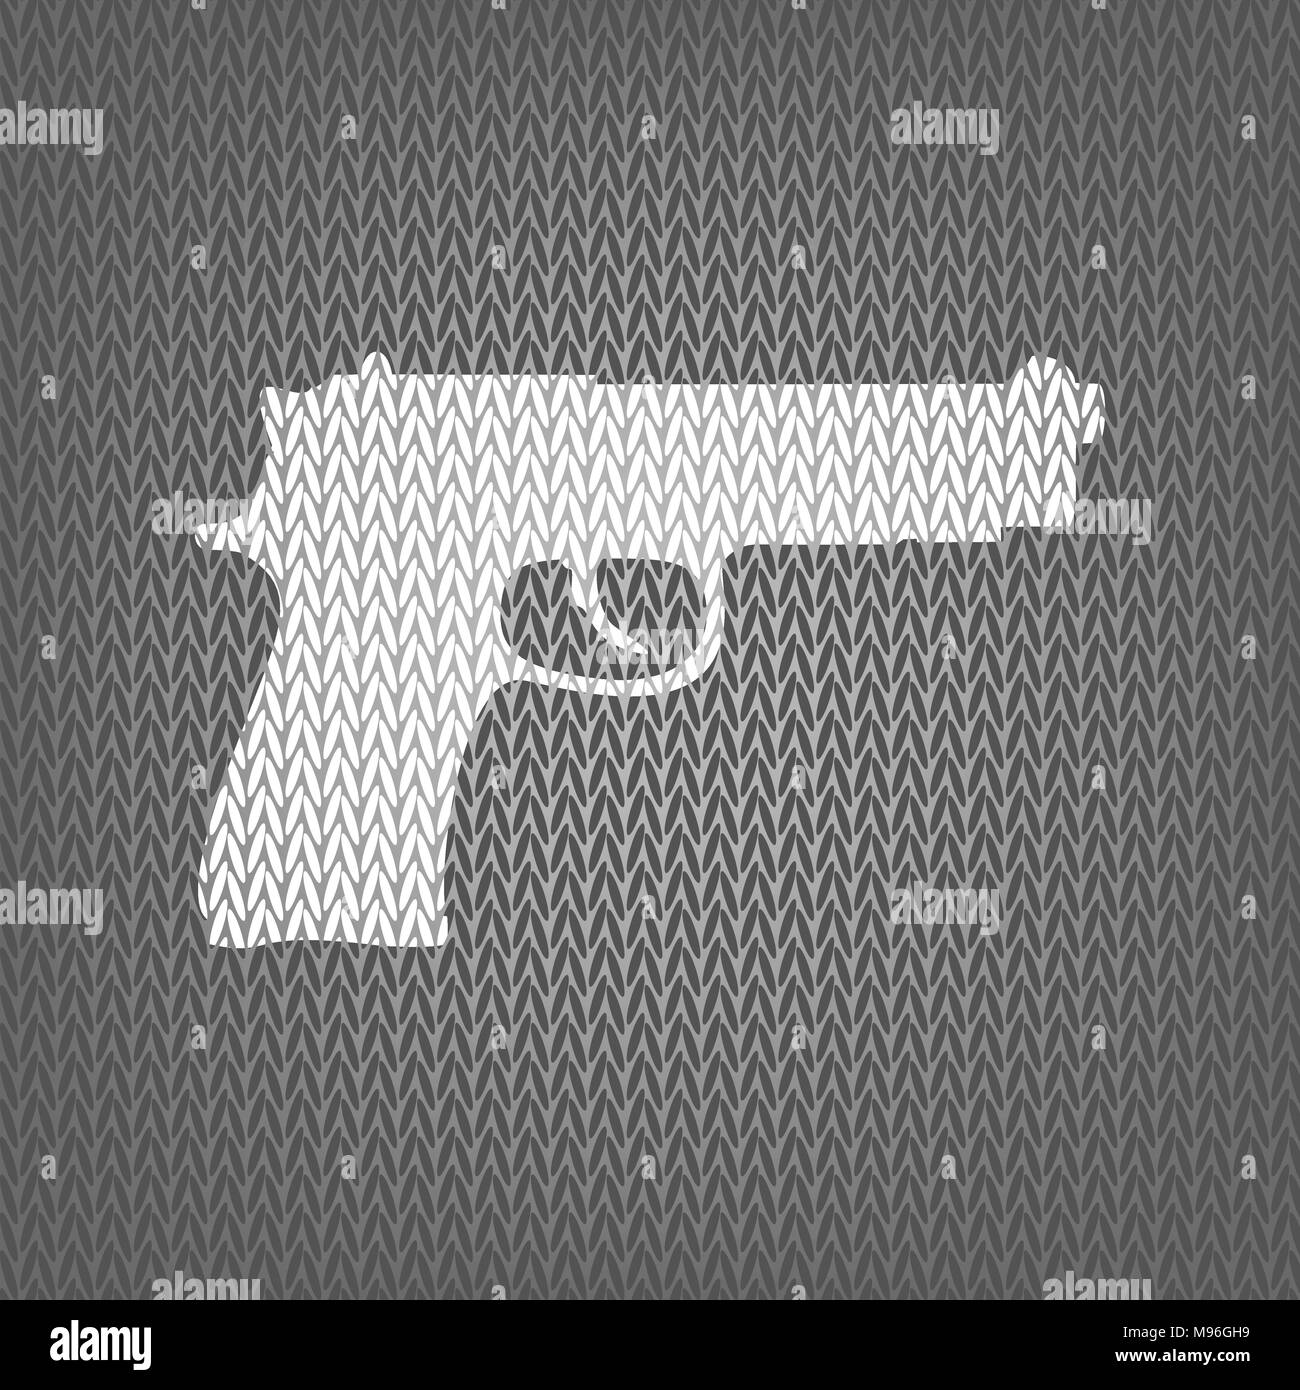 Gun sign illustration. Vector. White knitted icon on gray knitted background. Isolated. - Stock Vector